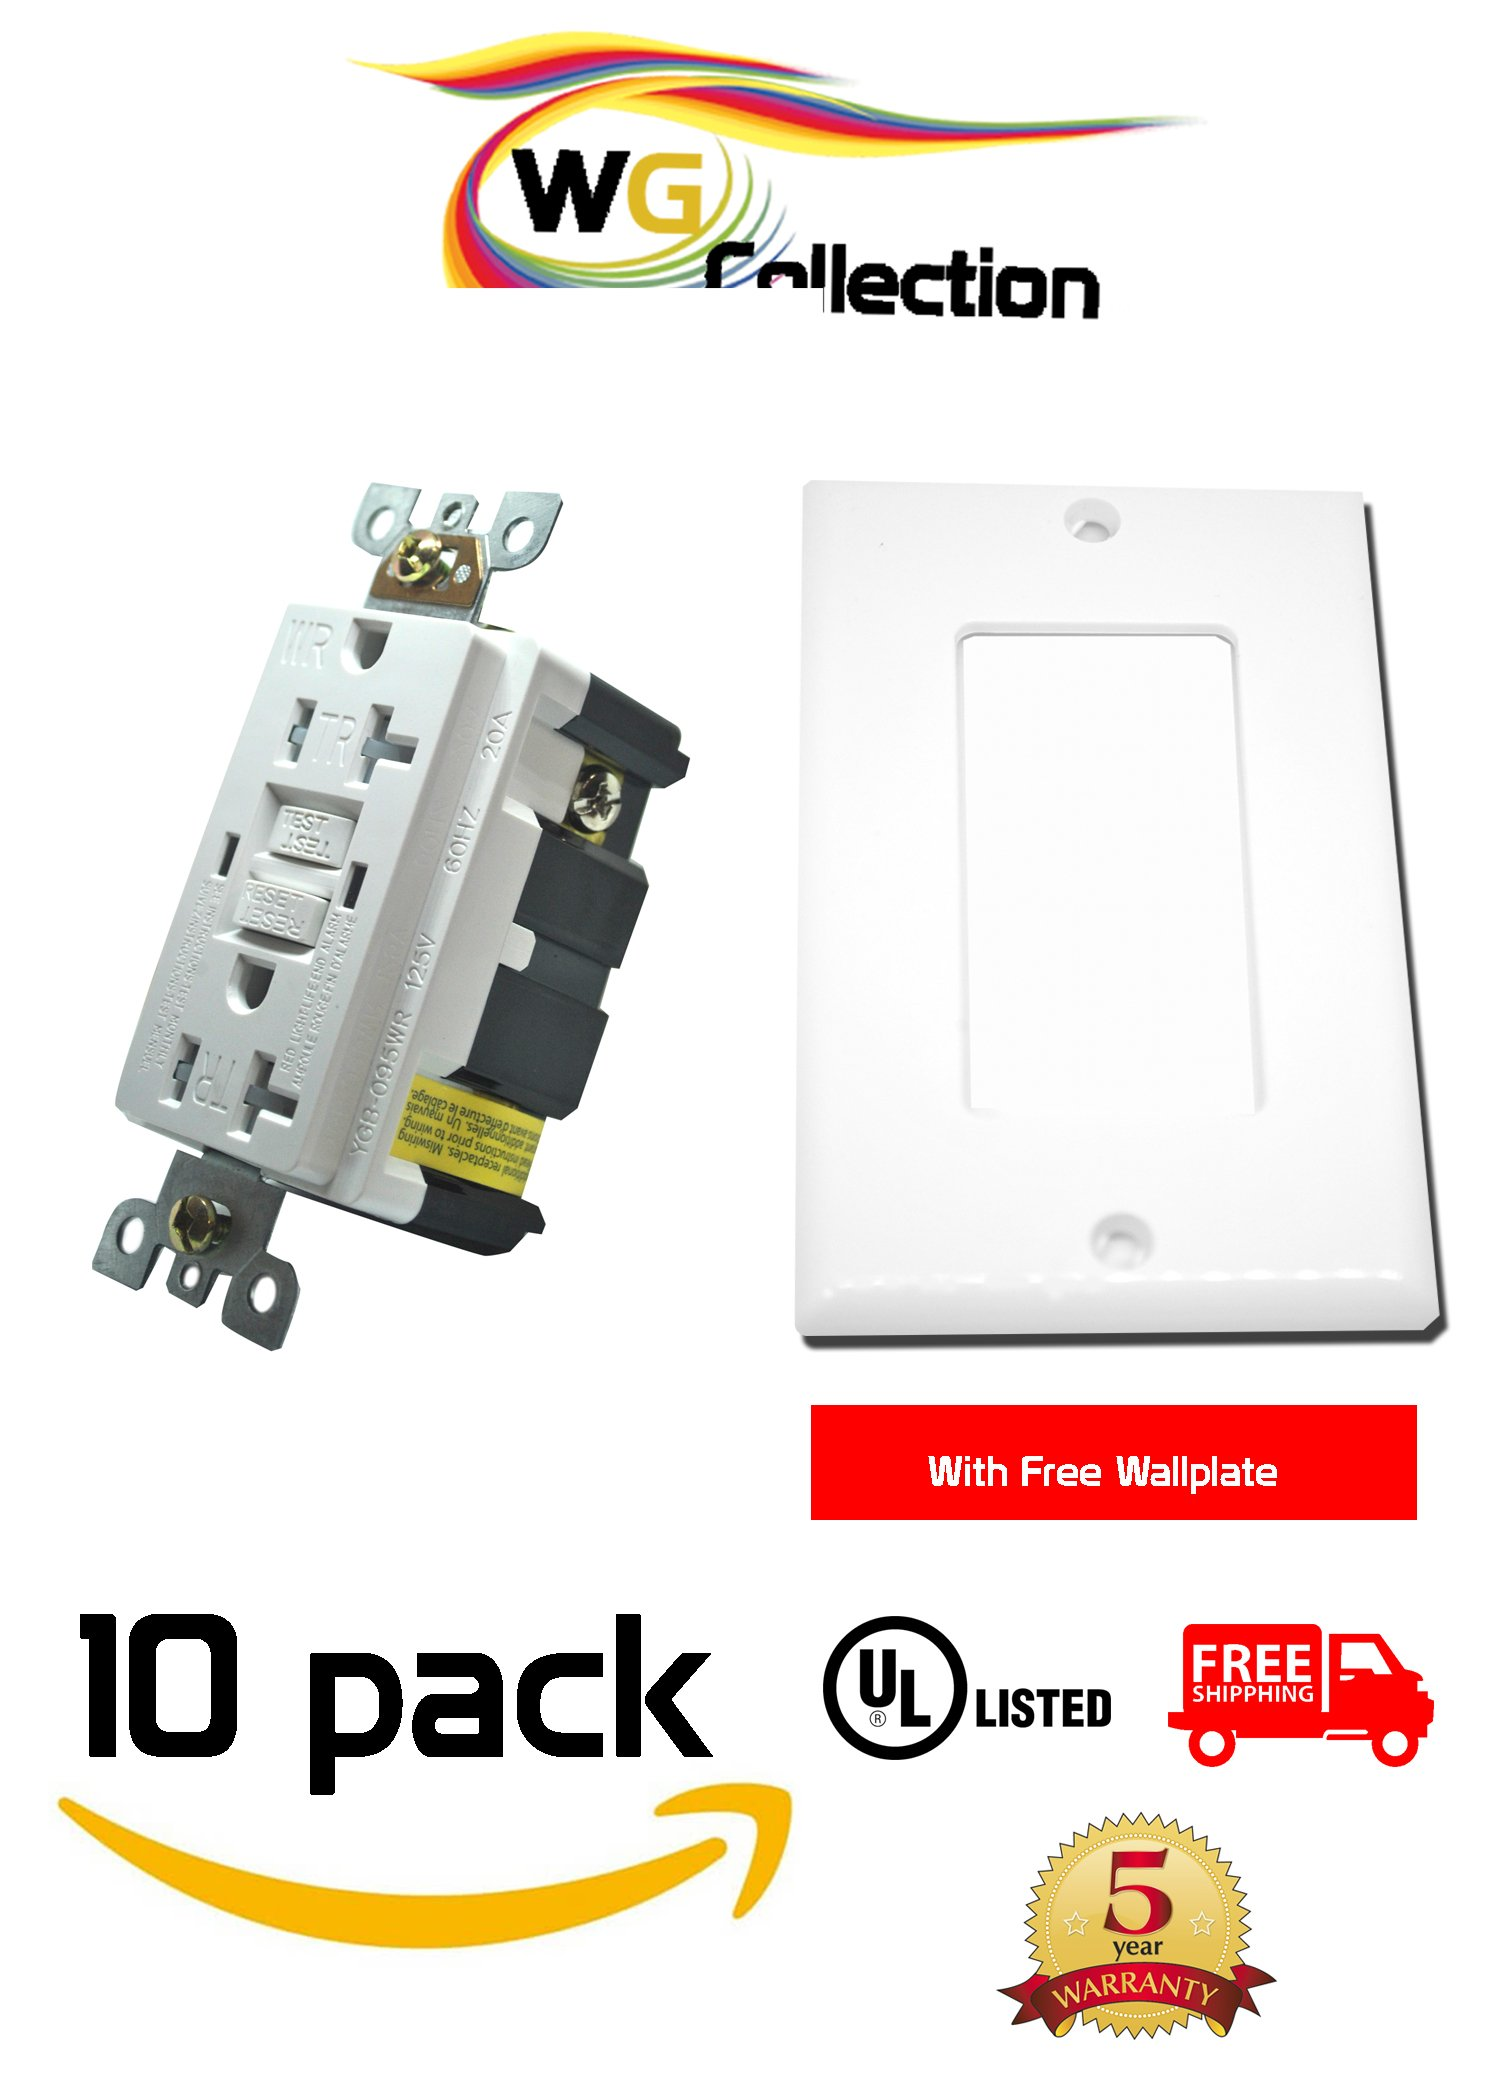 WG Collection 20A 125 Volt Tamper-Resistant, Water Reistant GFCI Outlet, Receptacle, UL Listed, White , LED Indicator for Home, Office and Warehouse use with Free Wallplates 10 Pack